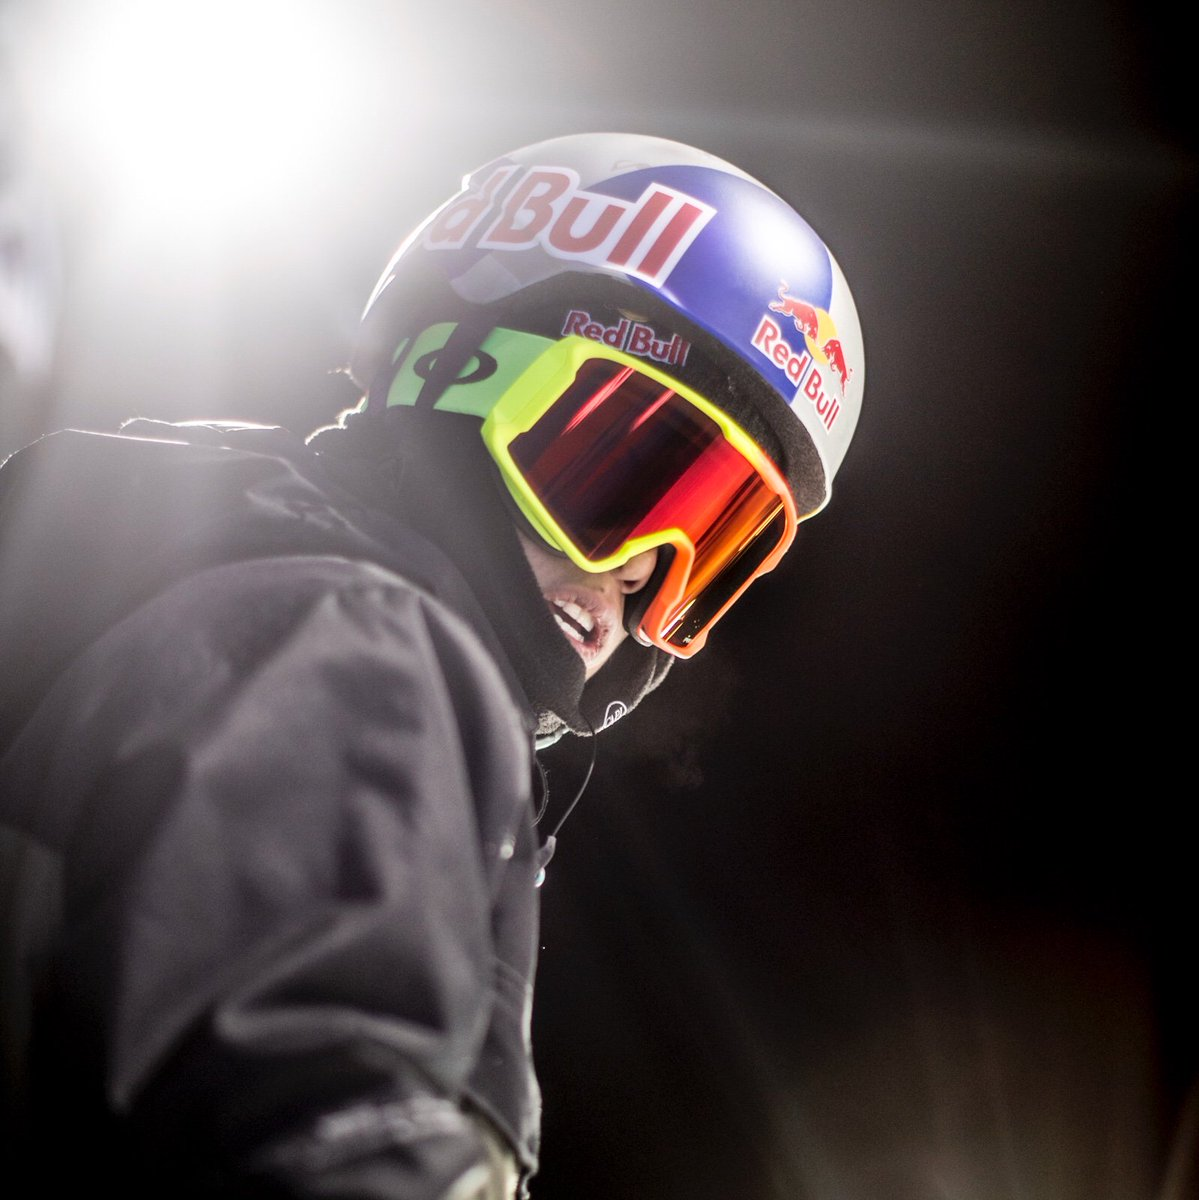 d8edc52ad84  TeamOakley ready to shine at  XGames.  HarmonyFade http   oak.ly 2rBu2RJ  pic.twitter.com 407RIOtP7U